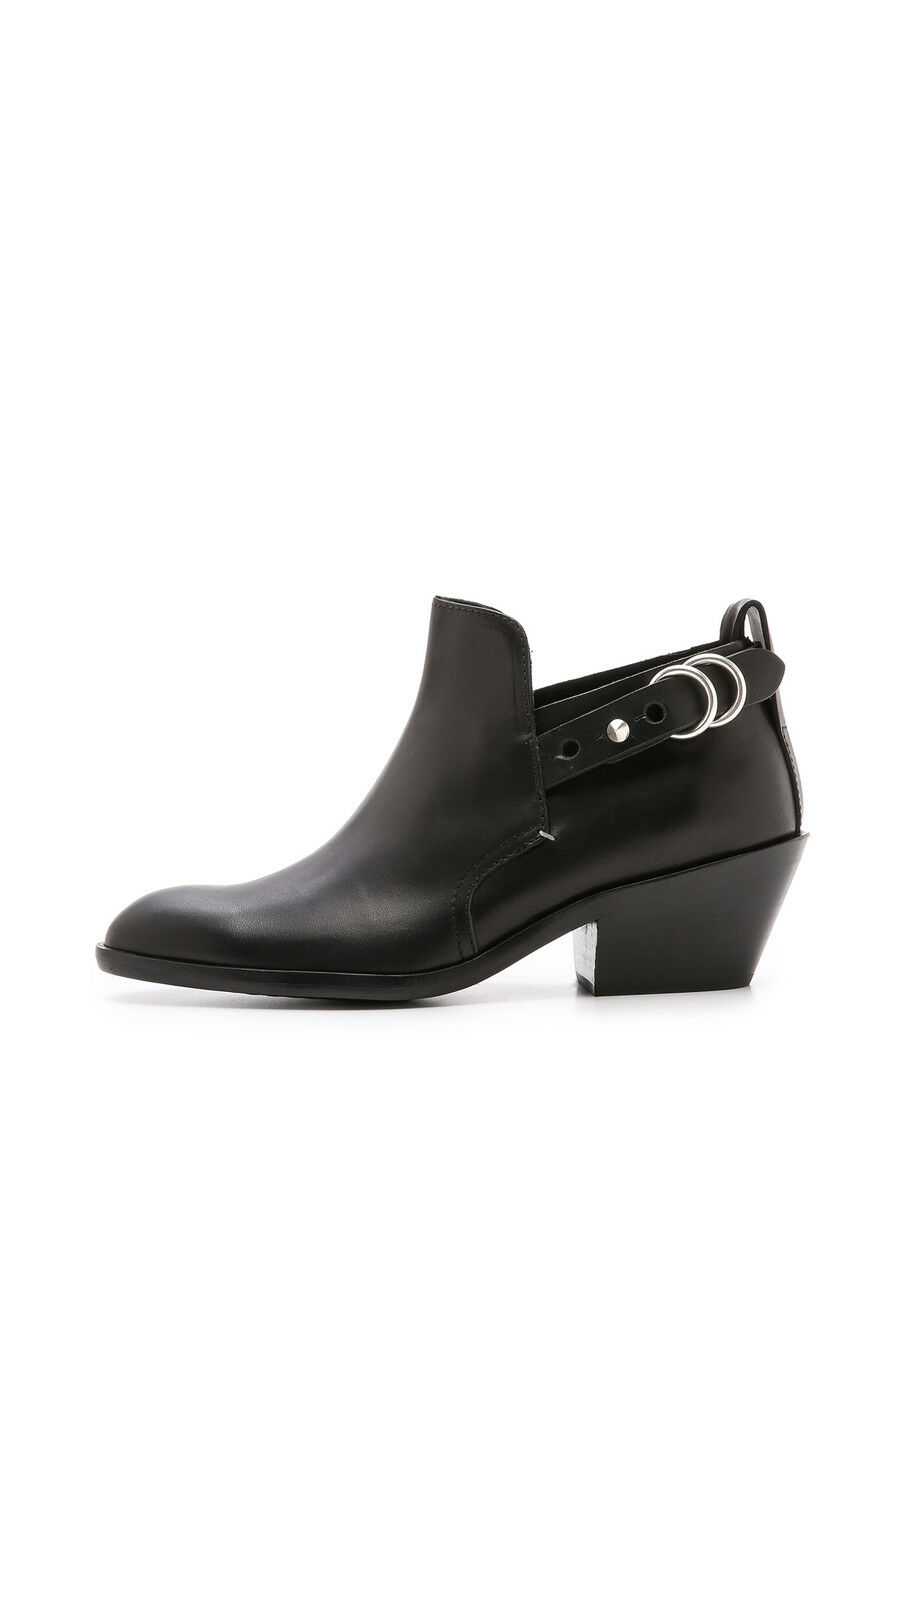 Rag & Bone Sullivan Boots Black Leather Low Heel Bootie, Sz 36, 6 US NIB $495